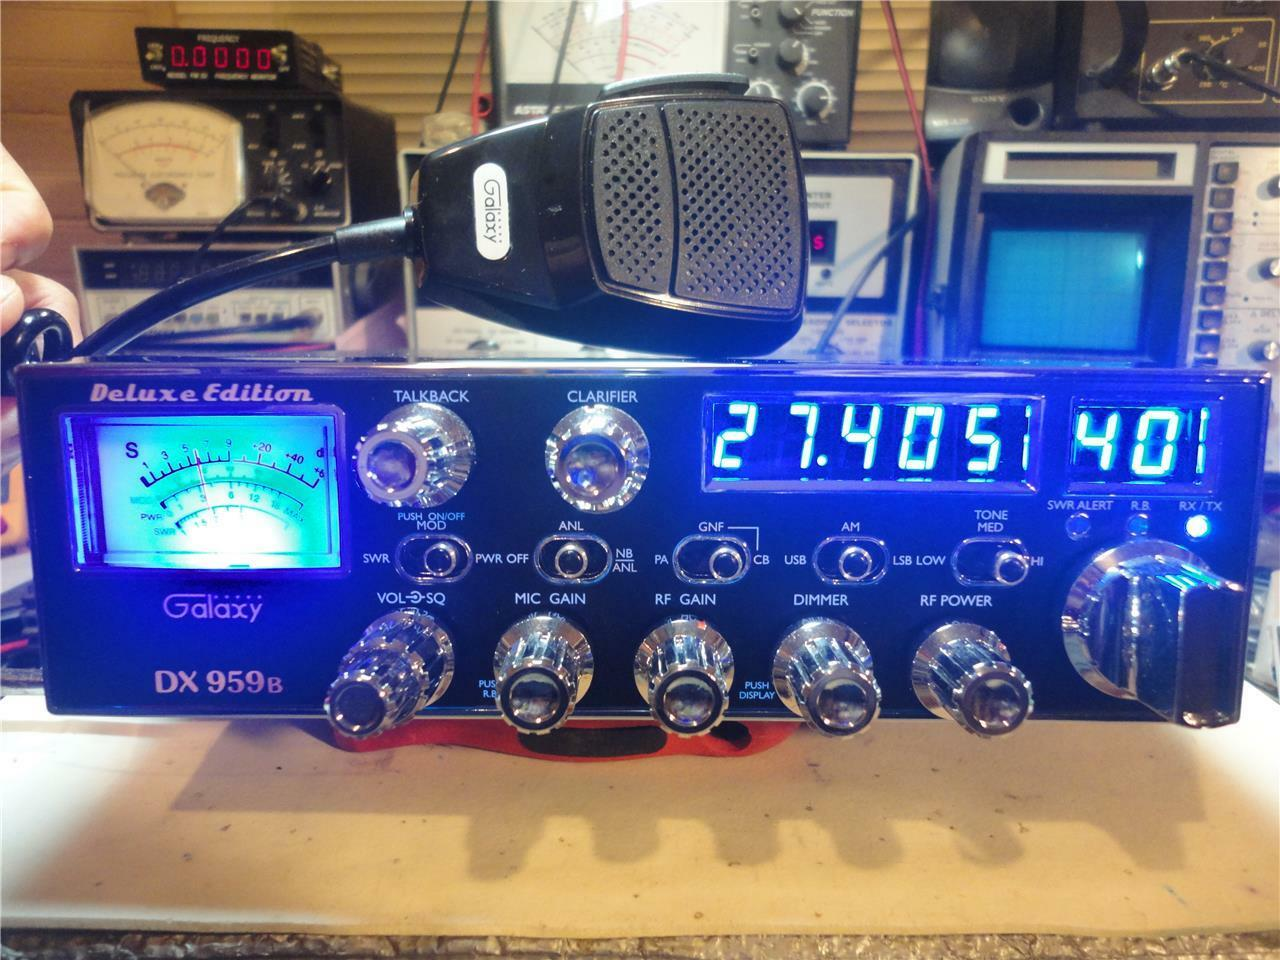 GALAXY DX 959B CB RADIO,SUPERTUNED,40-50 WATTS OUT ((SKIP TALKING^^^SKY WALKER)). Available Now for 340.00